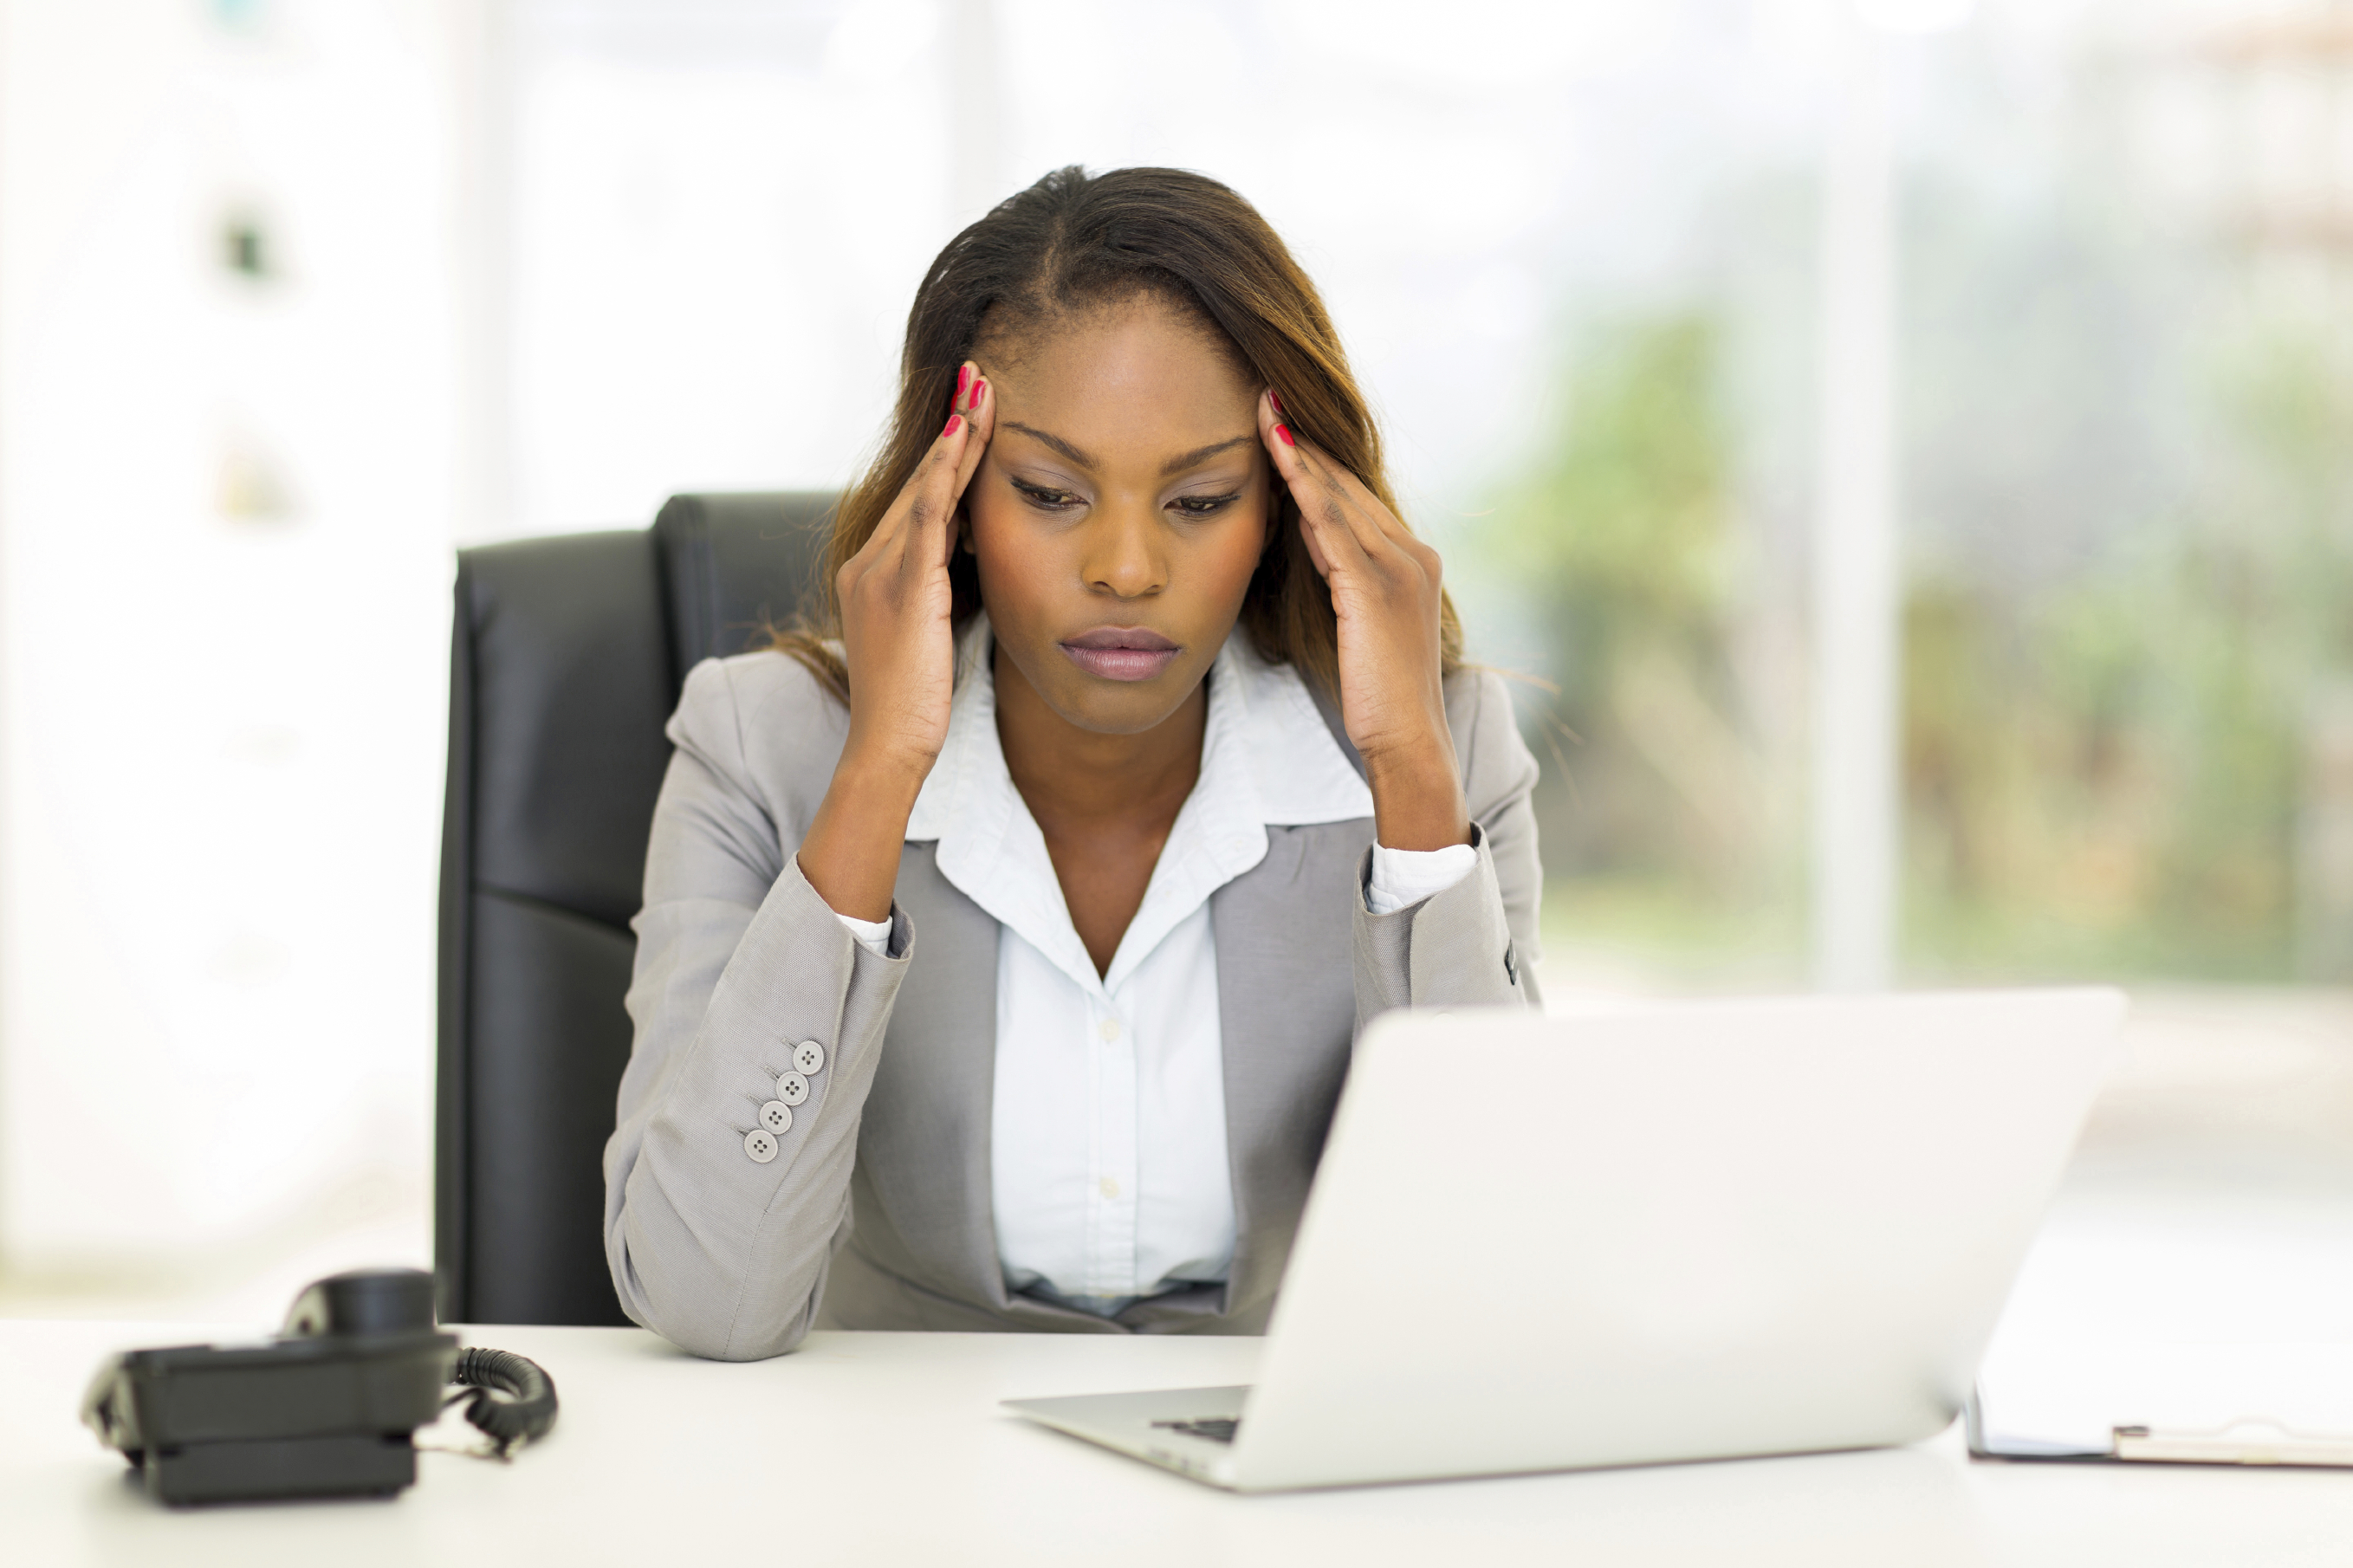 Stock Photo of a businesswoman dealing with stress